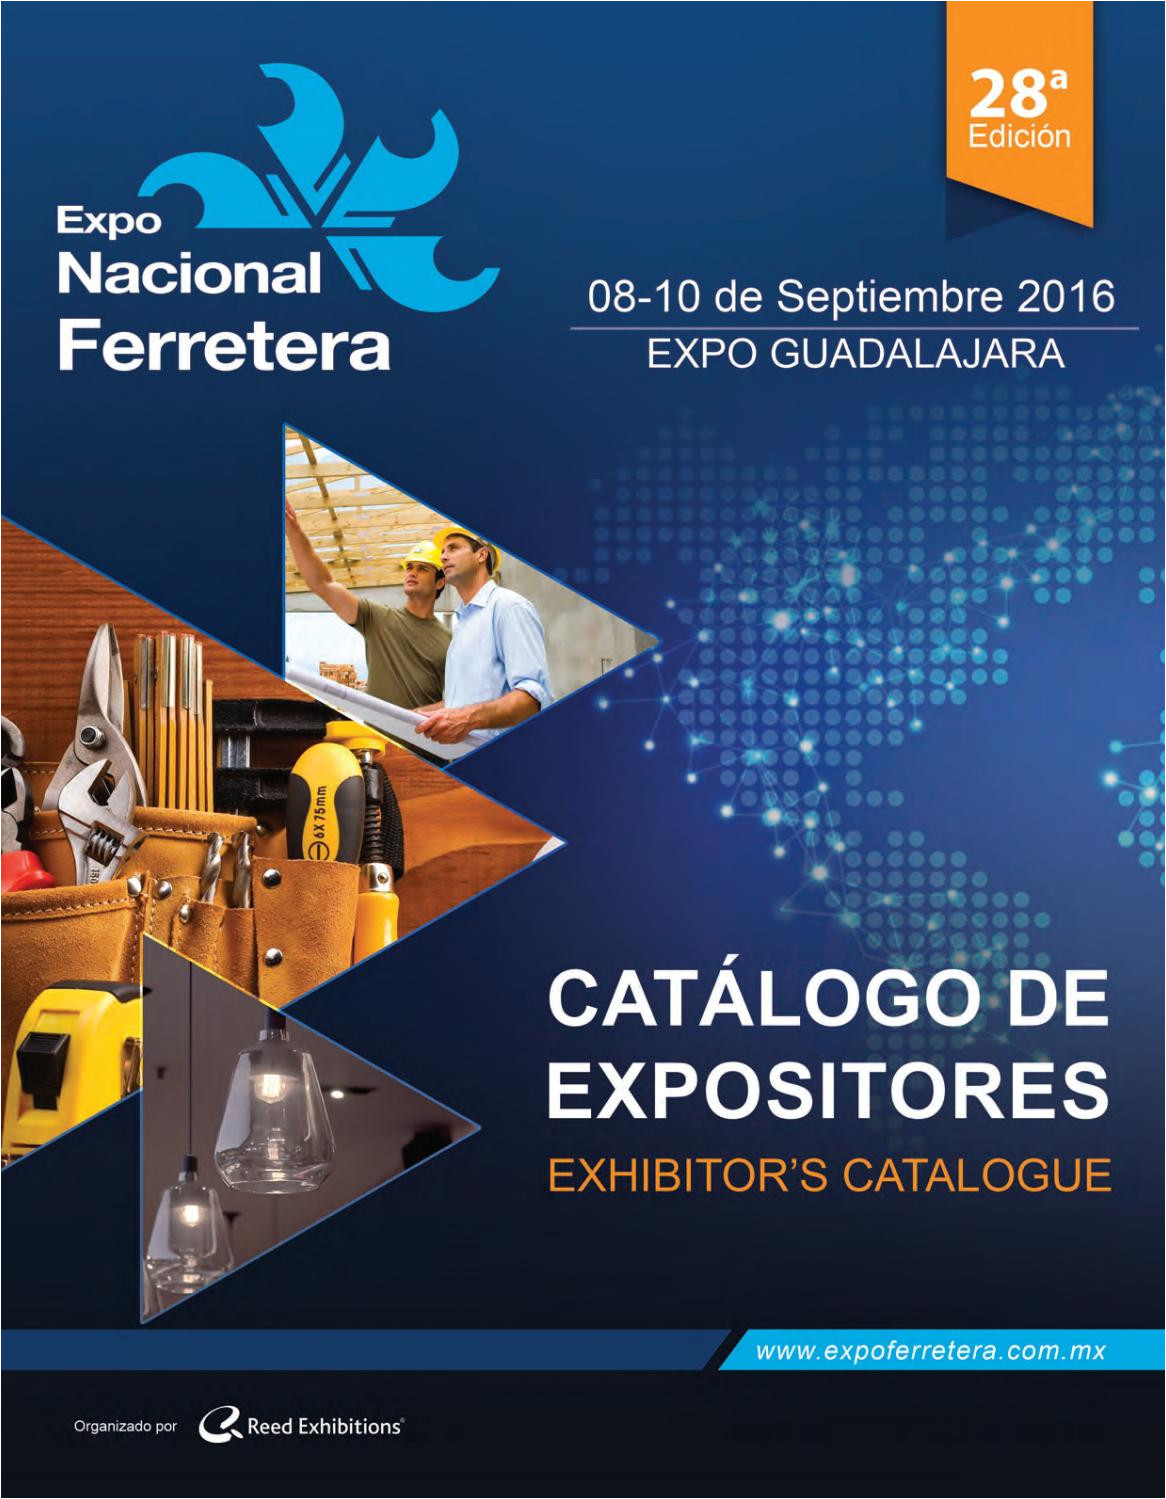 expo nacional ferretera catalogo de expositores 2016 by reed exhibitions mexico issuu